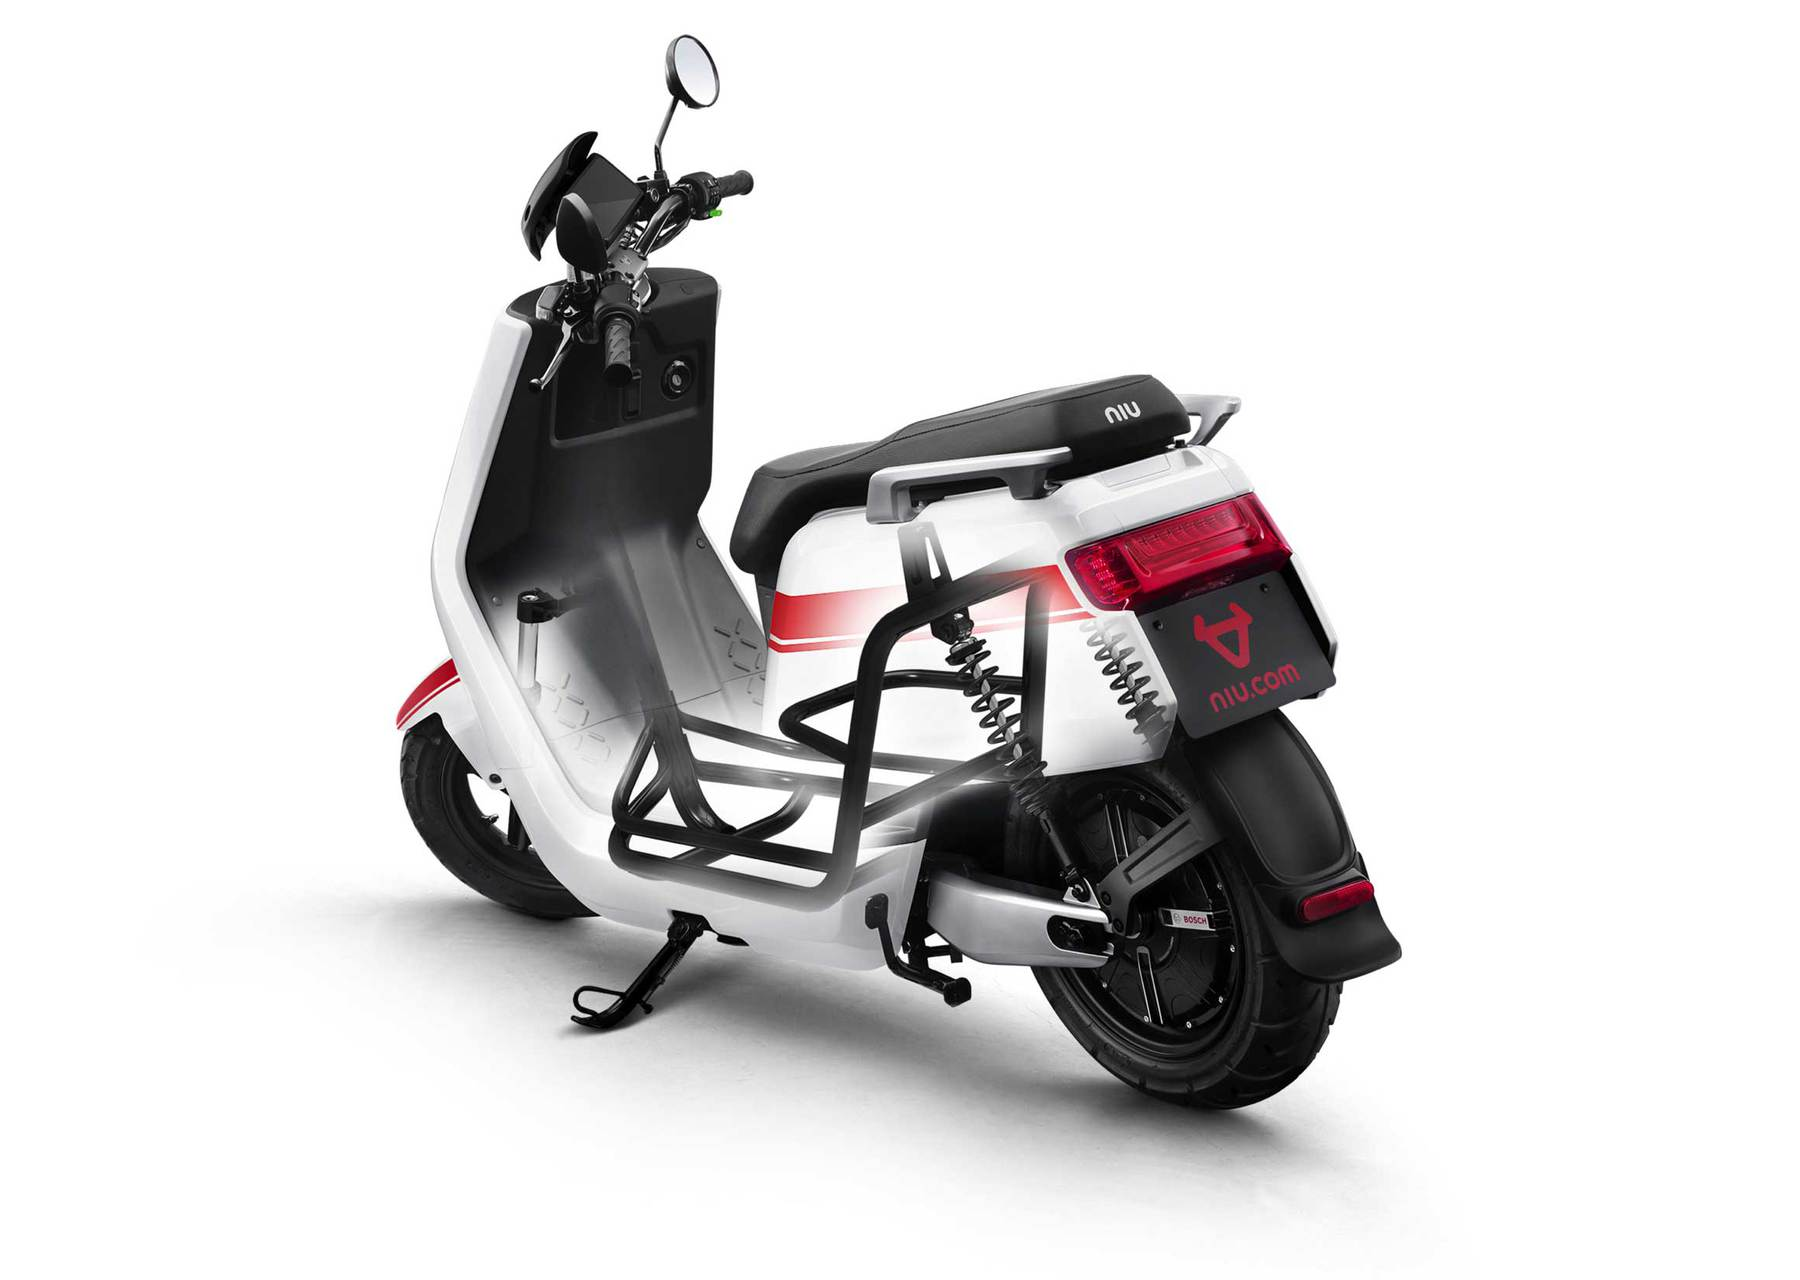 niu scooter roll cage